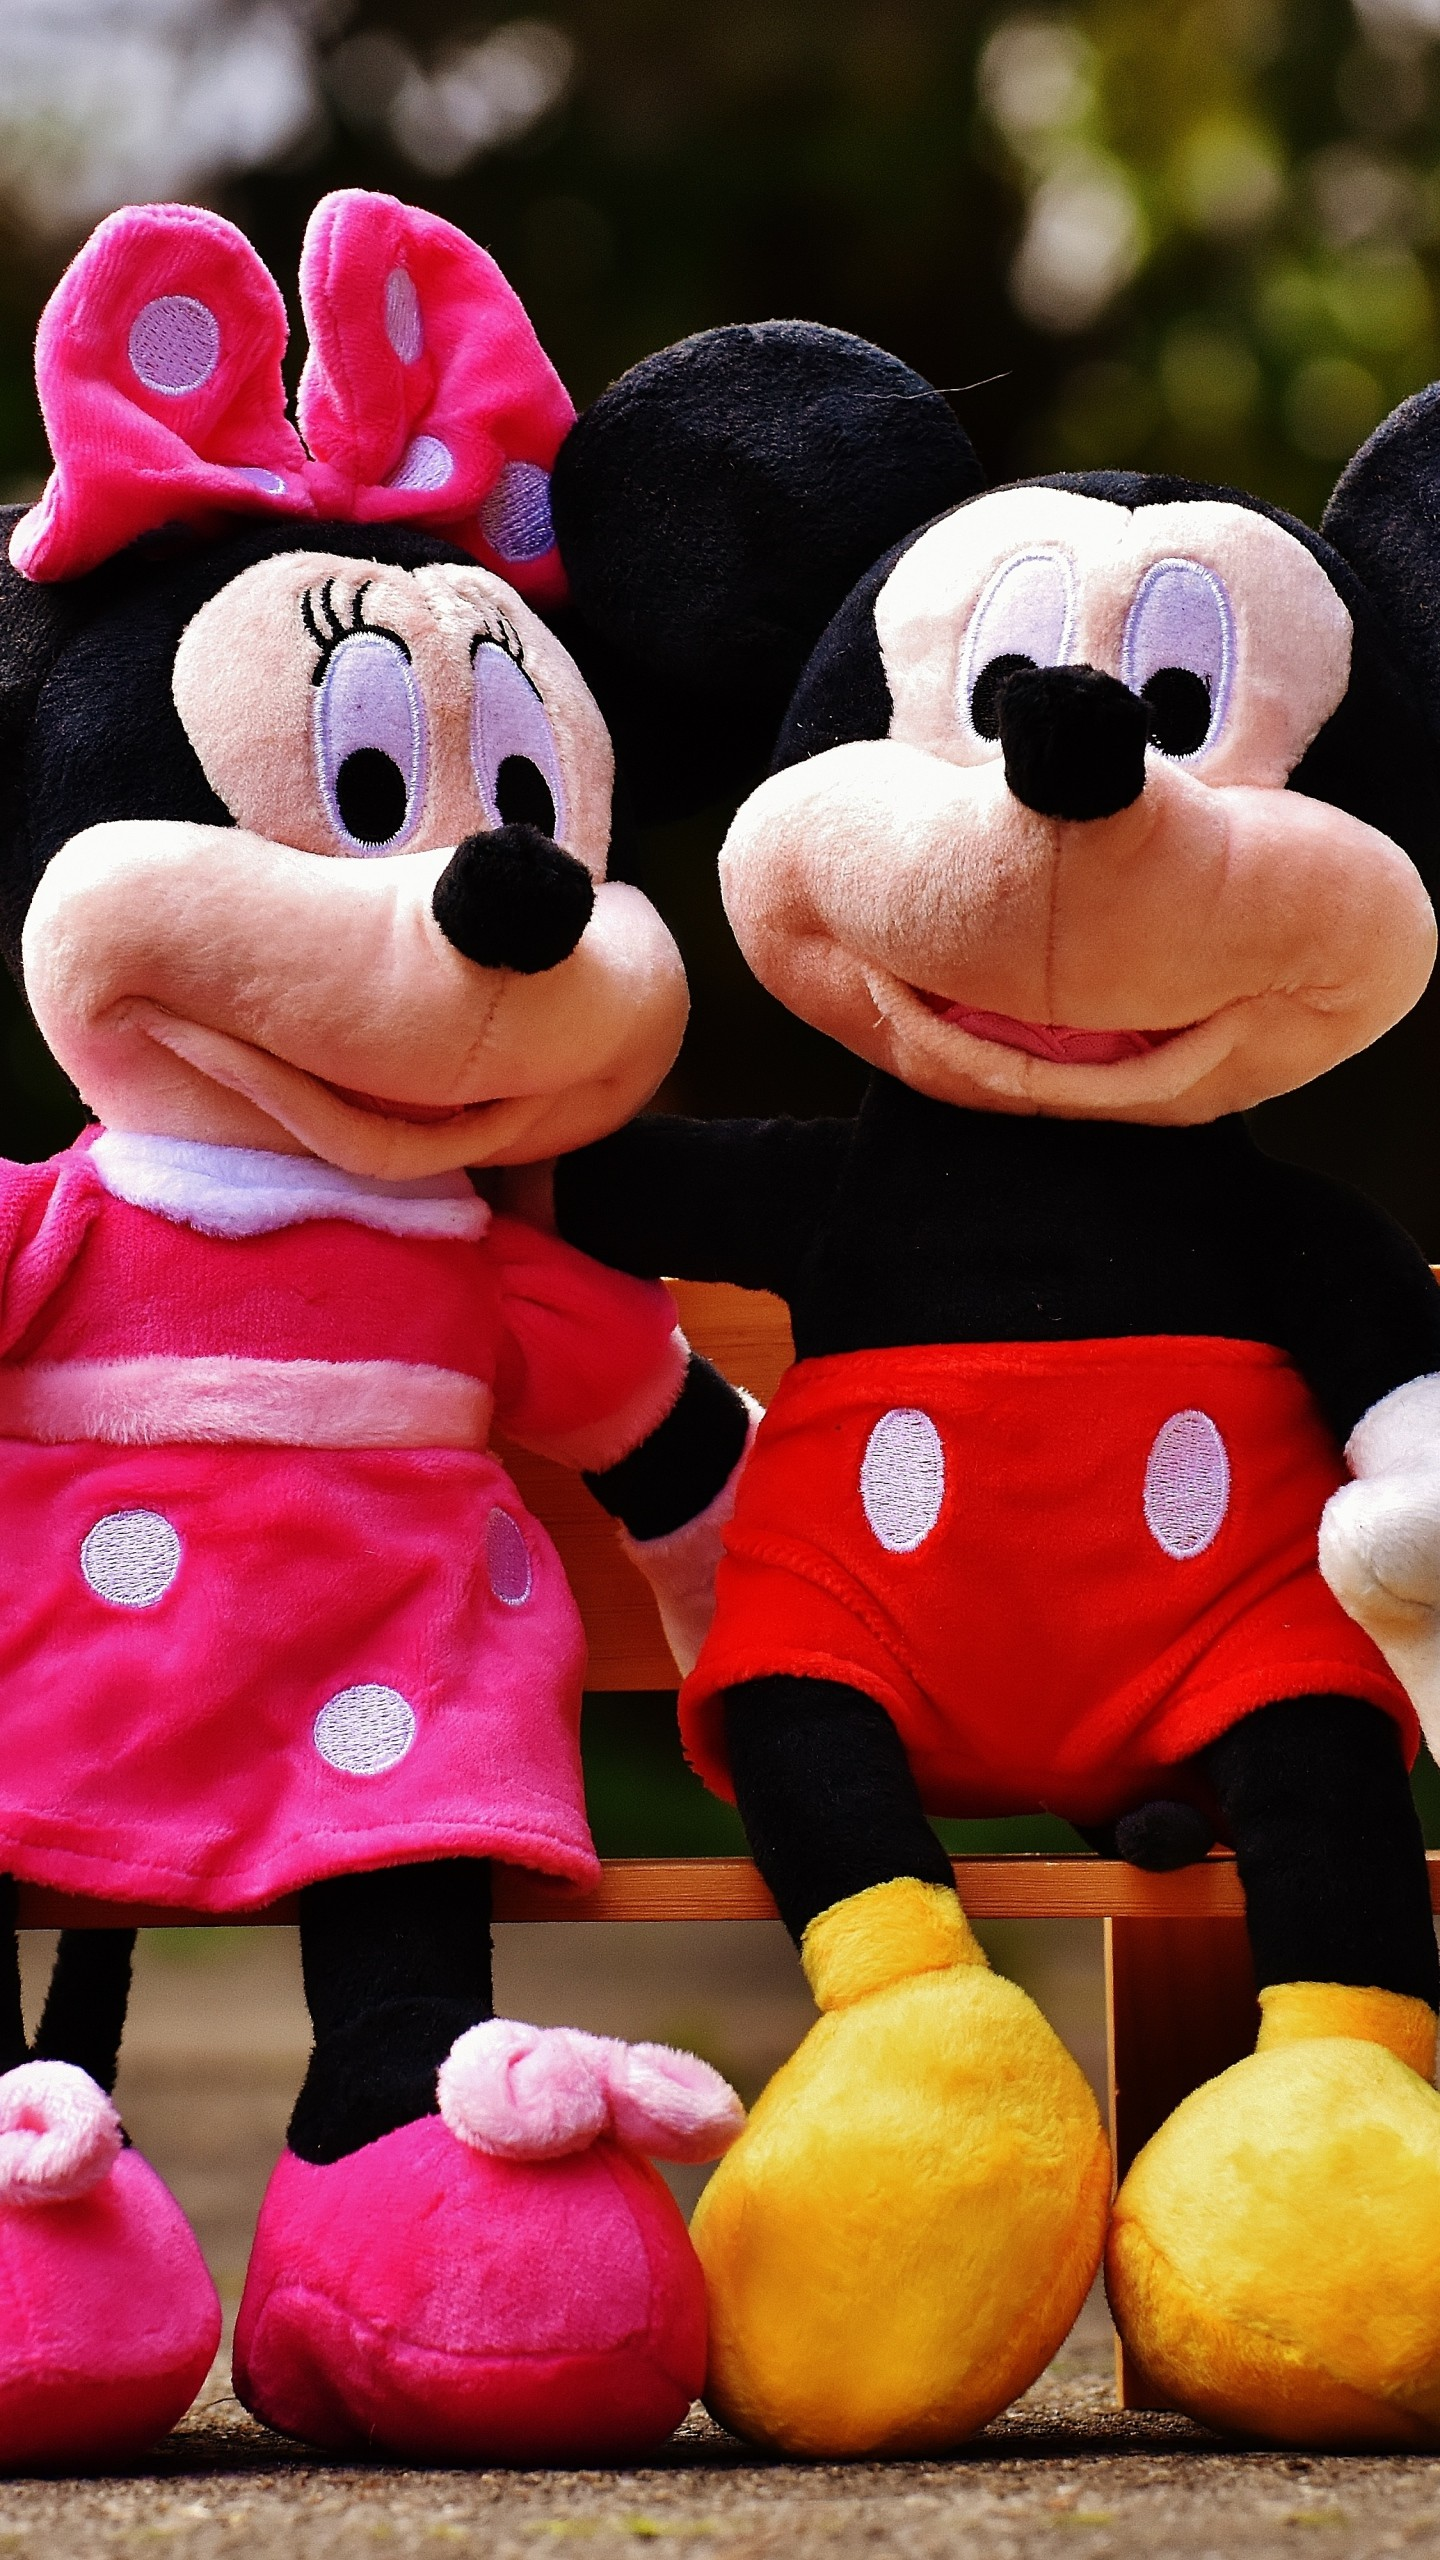 1440x2560 Preview wallpaper mickey mouse, minnie mouse, mouse, toys 1440x2560. Download · 1920x1080 ...